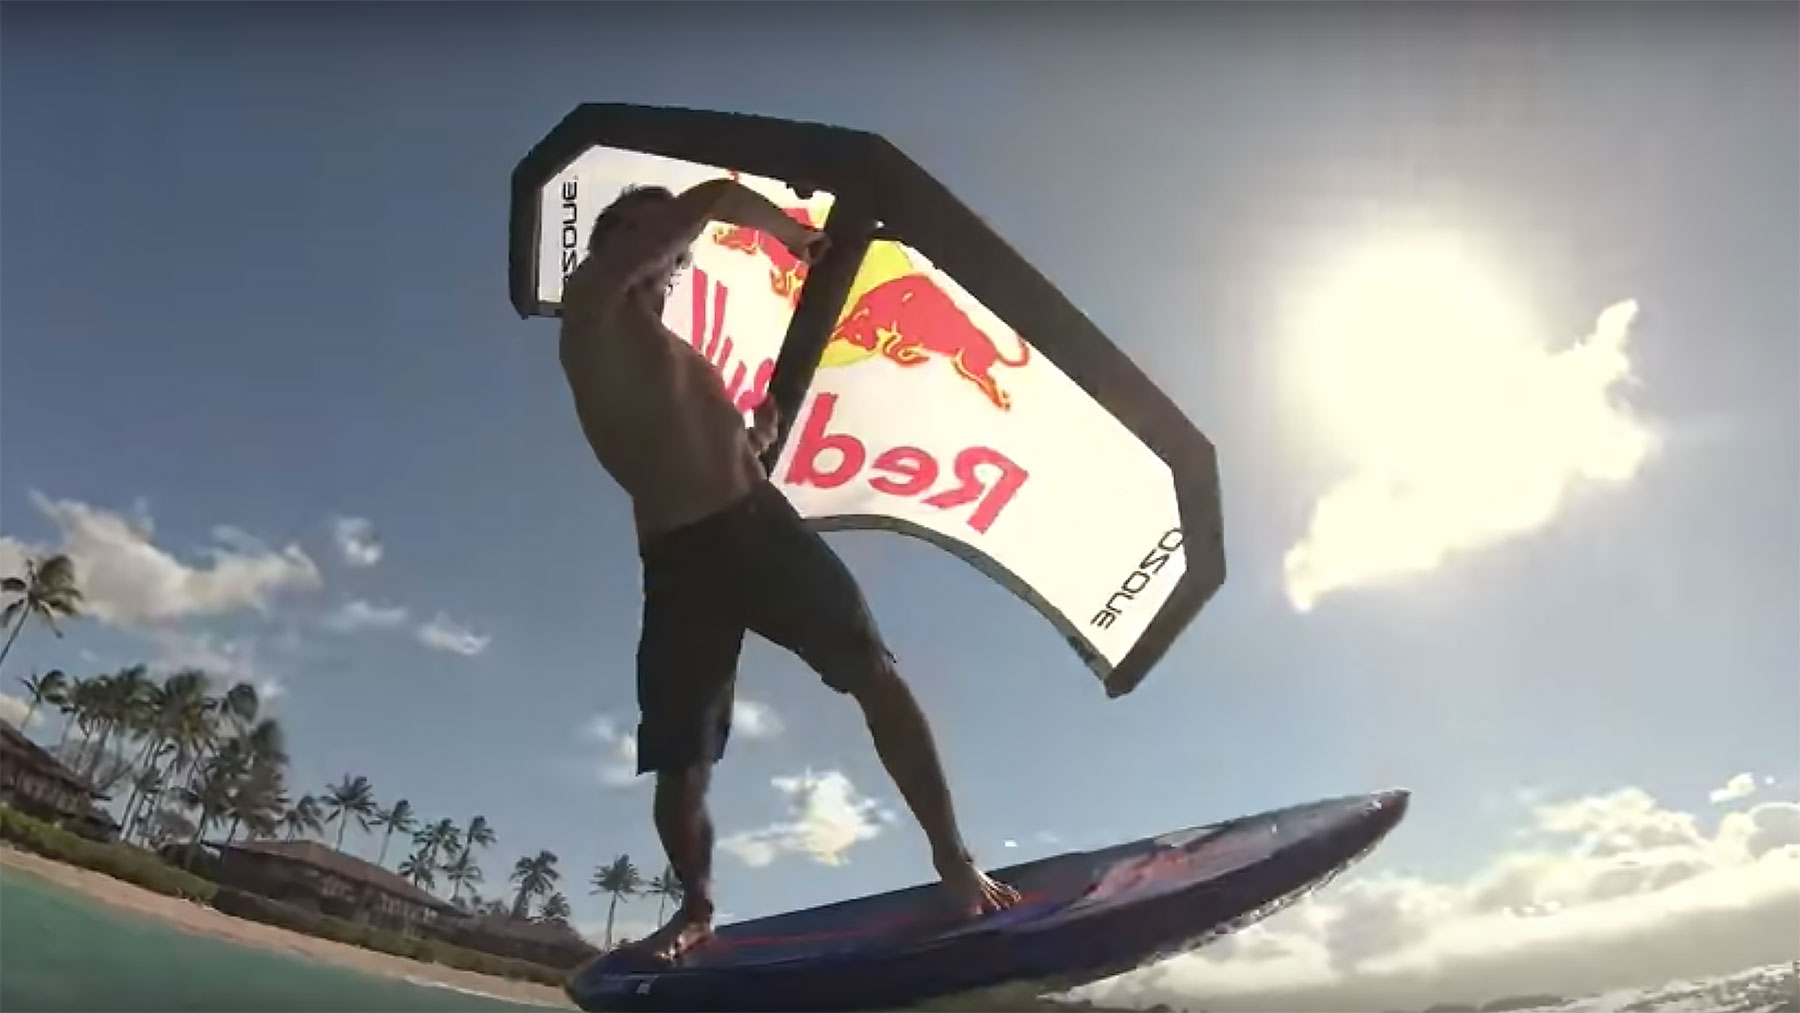 Kai Lenny Wing Surfing